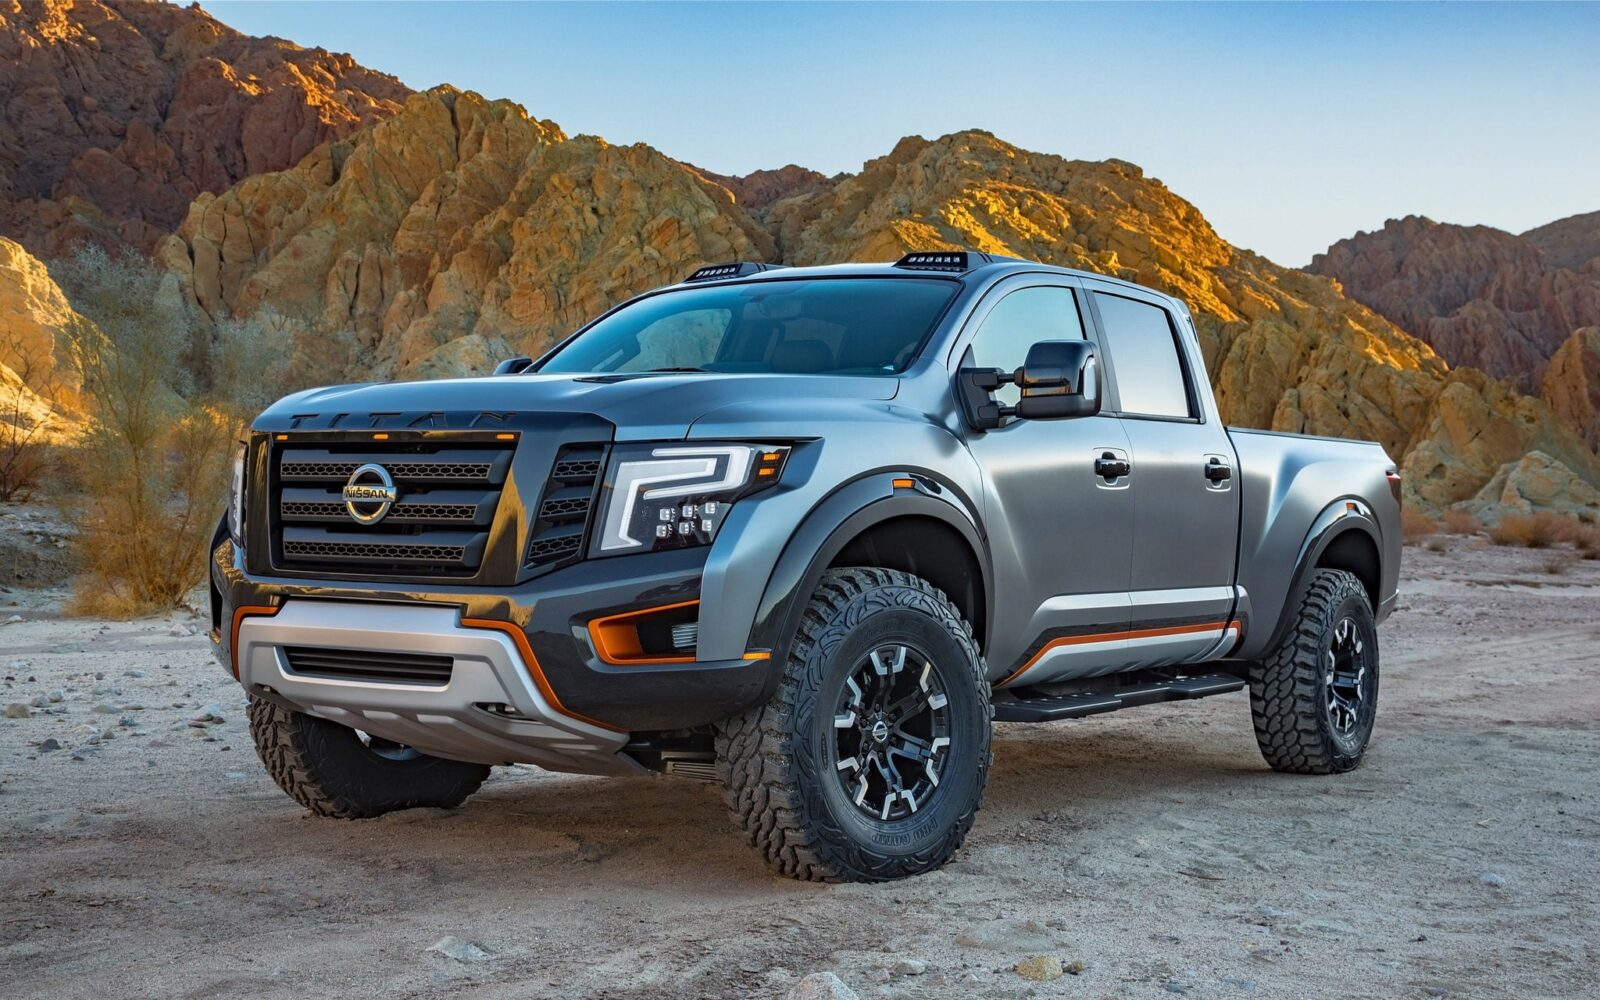 2016 Nissan Titan Warrior wallpapers HD free Download